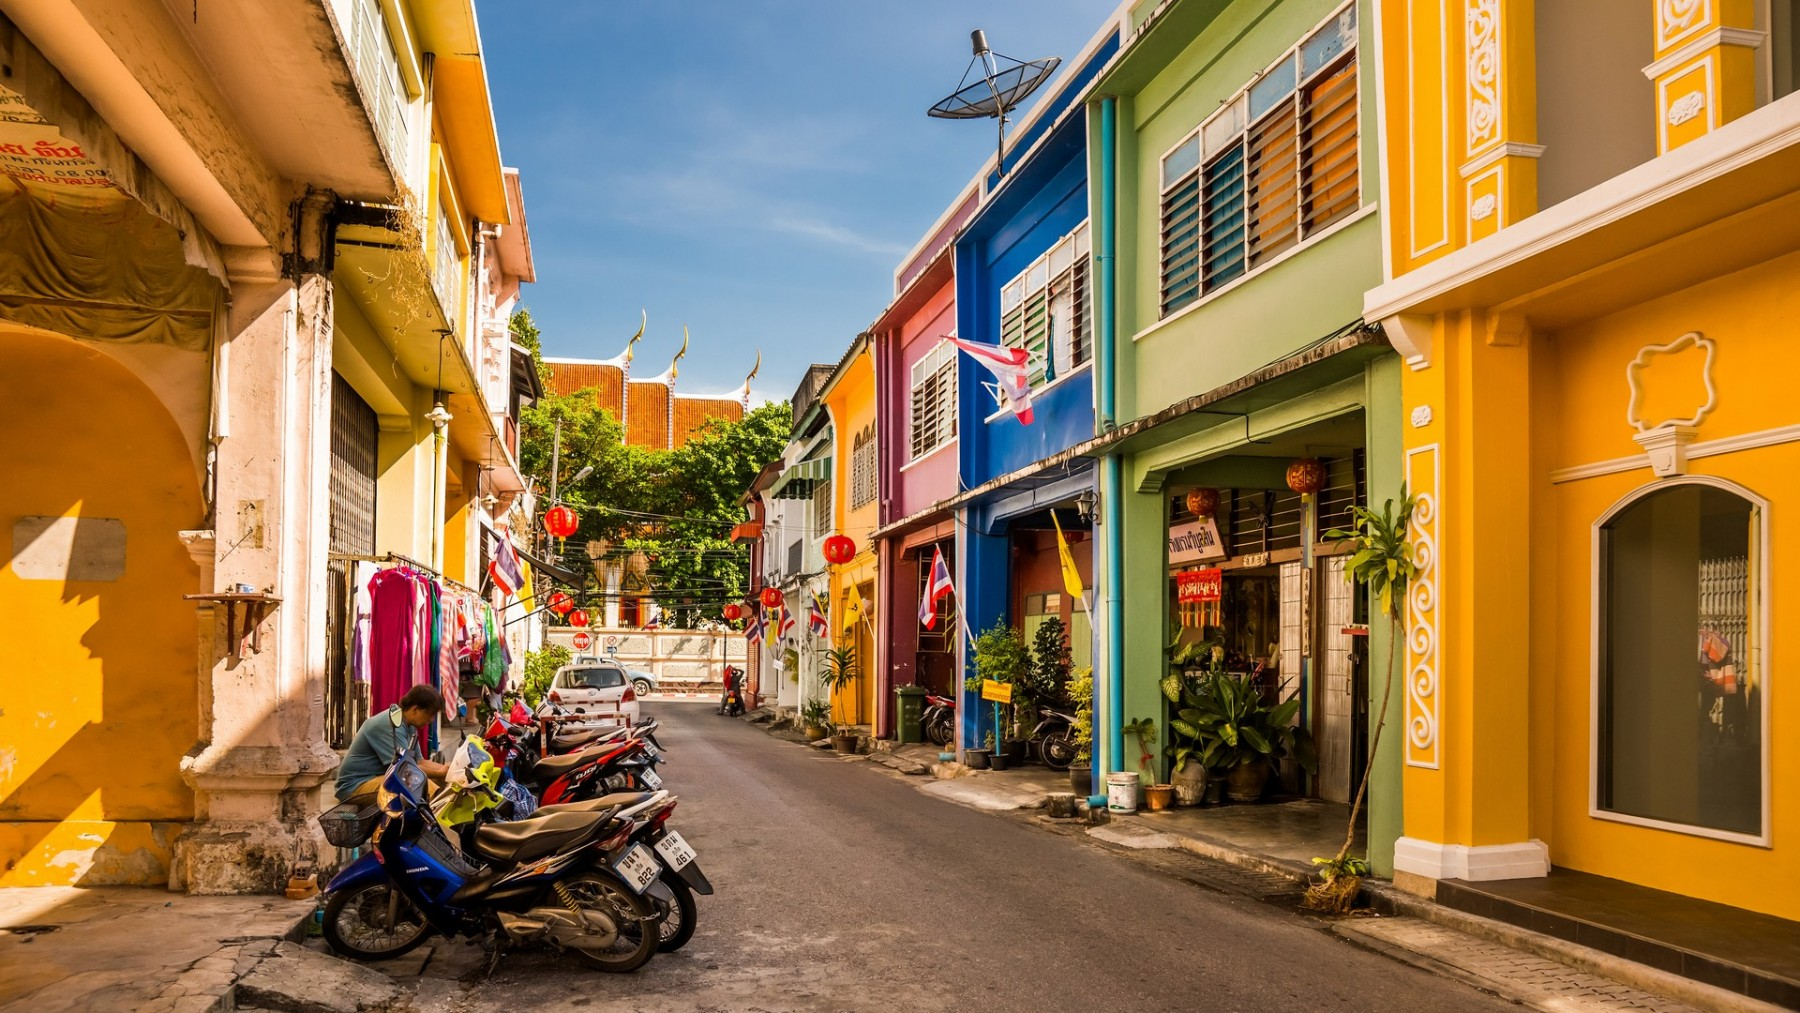 Discover the history of Phuket at colourful Old Town